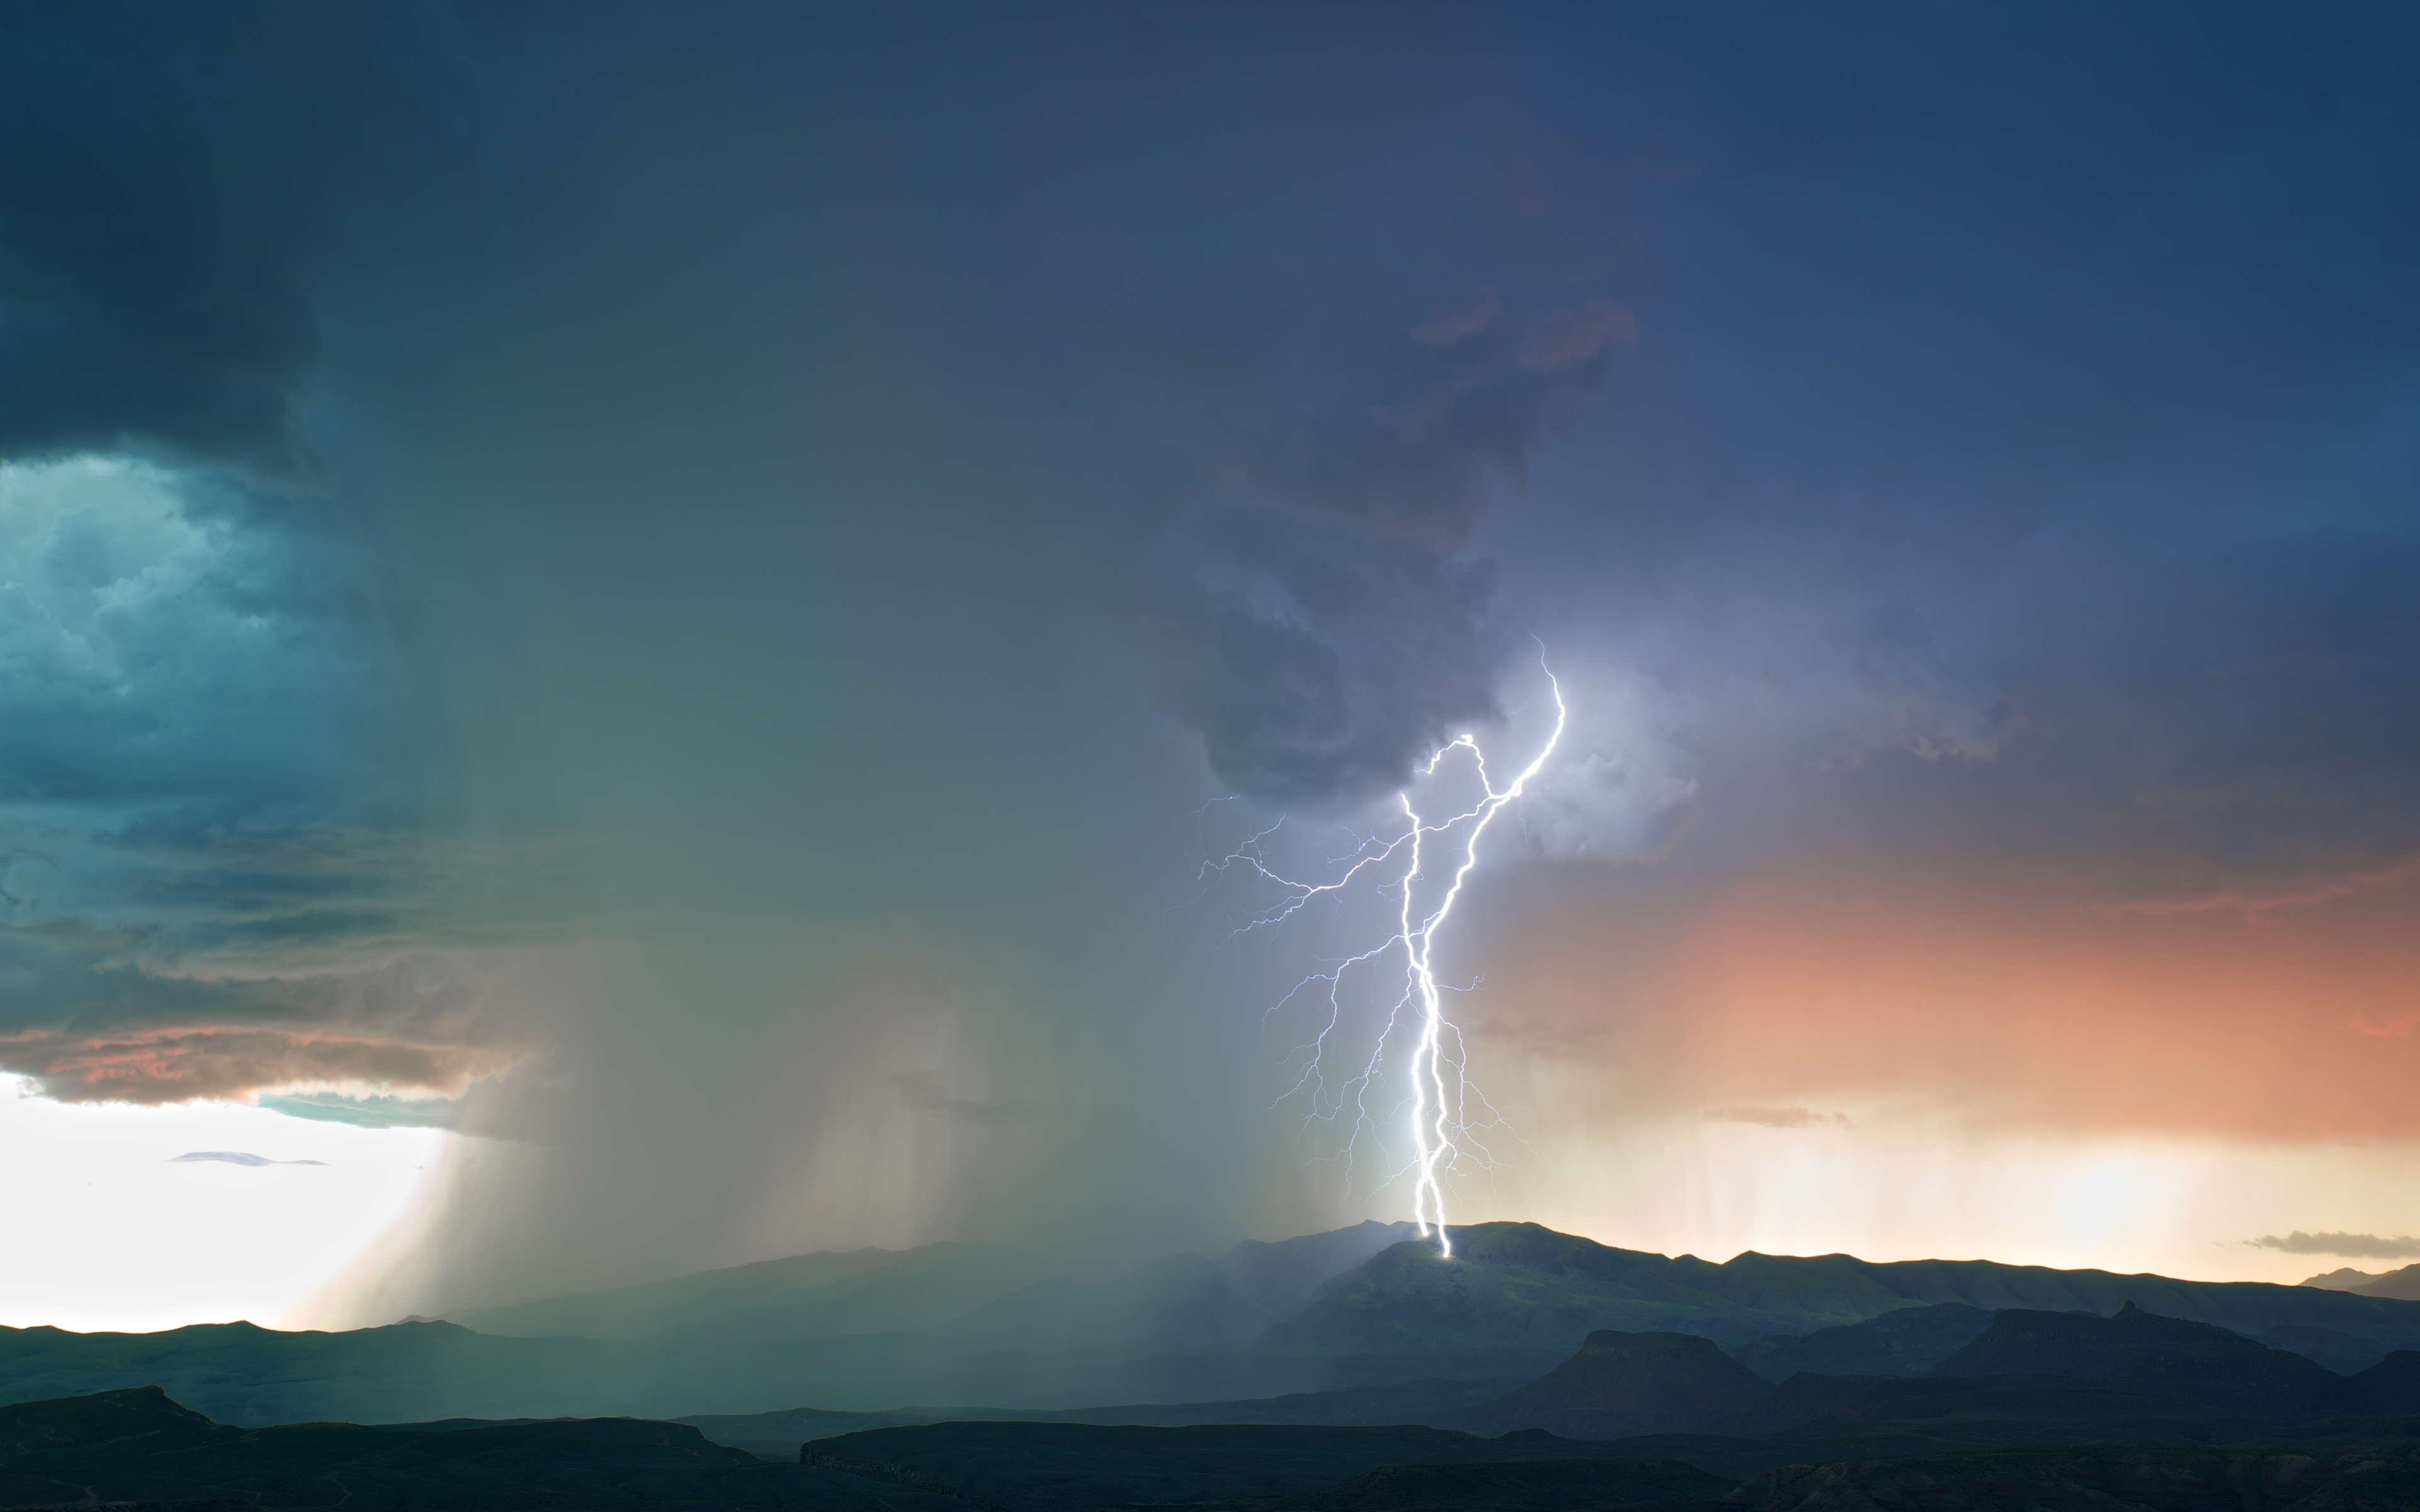 Sunset during a thunderstorm wallpapers and images - wallpapers ...